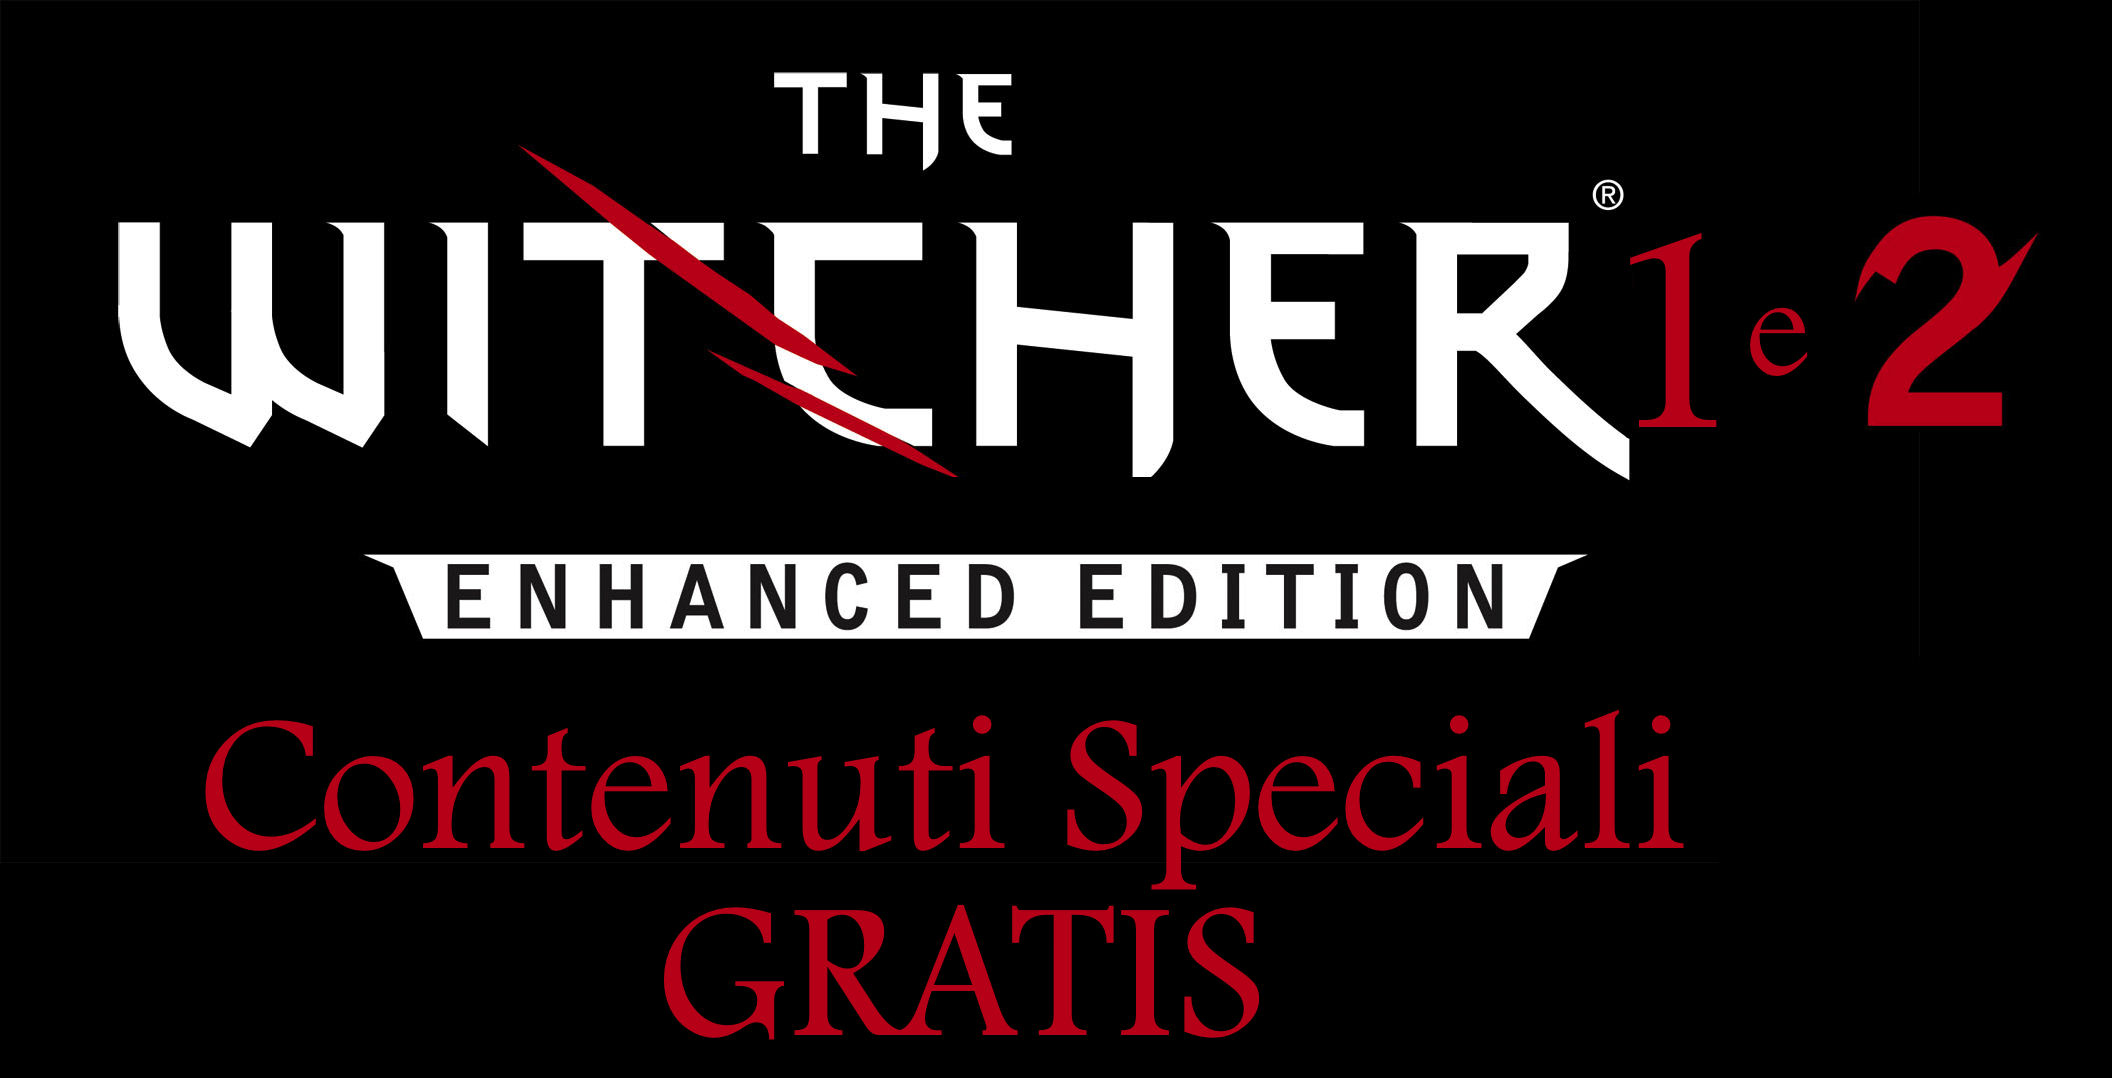 Come avere i contenuti speciali di The Witcher 1 e 2 e l'upgrade a Enhanced Edition gratis!